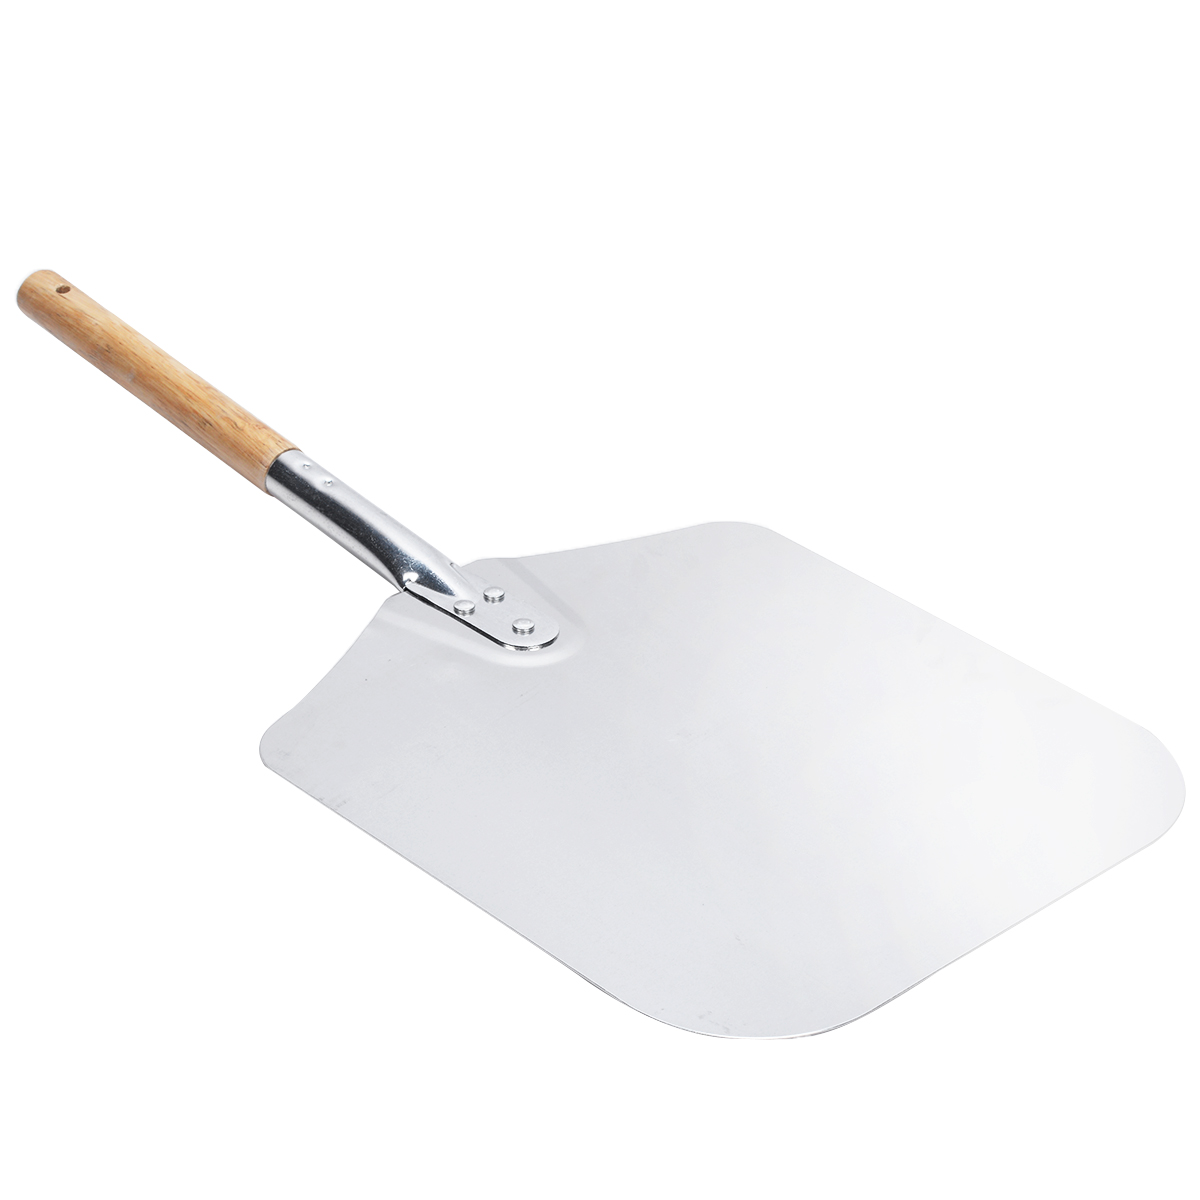 1pc Aluminum Pizza Peel Shovel Silver Bread Pie Shovel with Wood Handle Mayitr 66 x 30.5cm Paddle for Baking Accessory